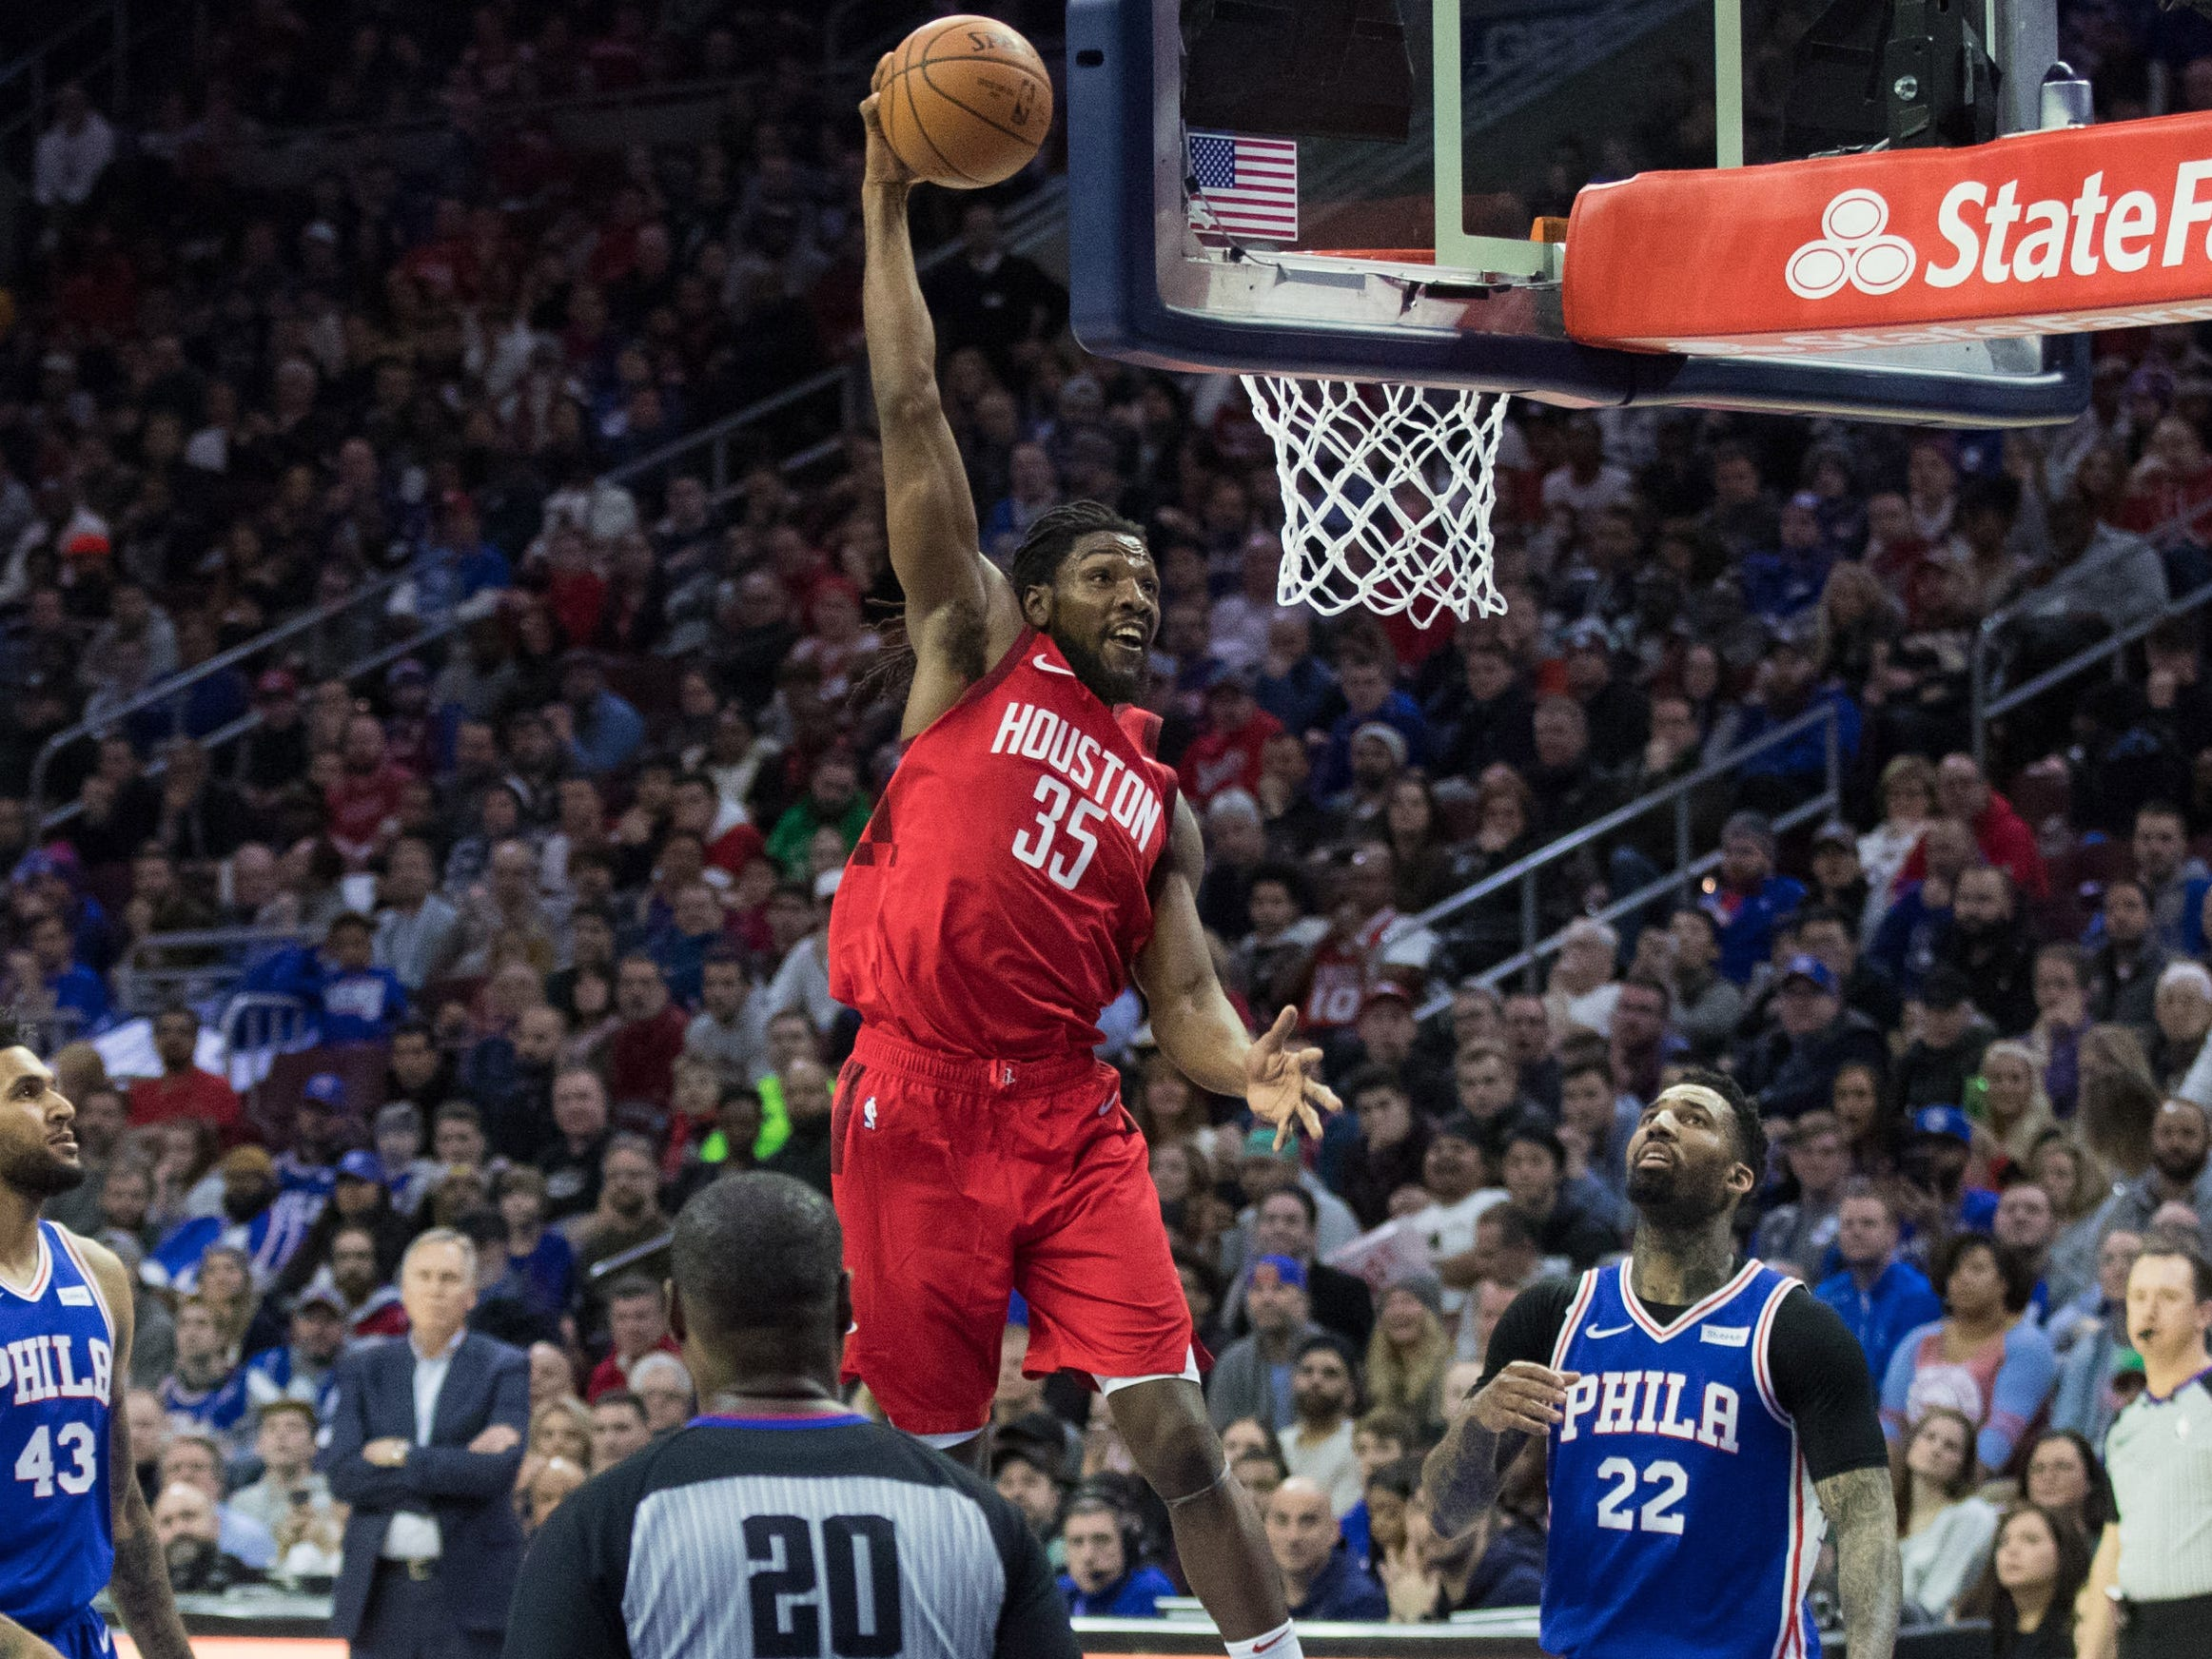 Jan. 21: Newly-signed Rockets forward Kenneth Faried soars to the bucket for a thunderous one-handed slam against the 76ers.